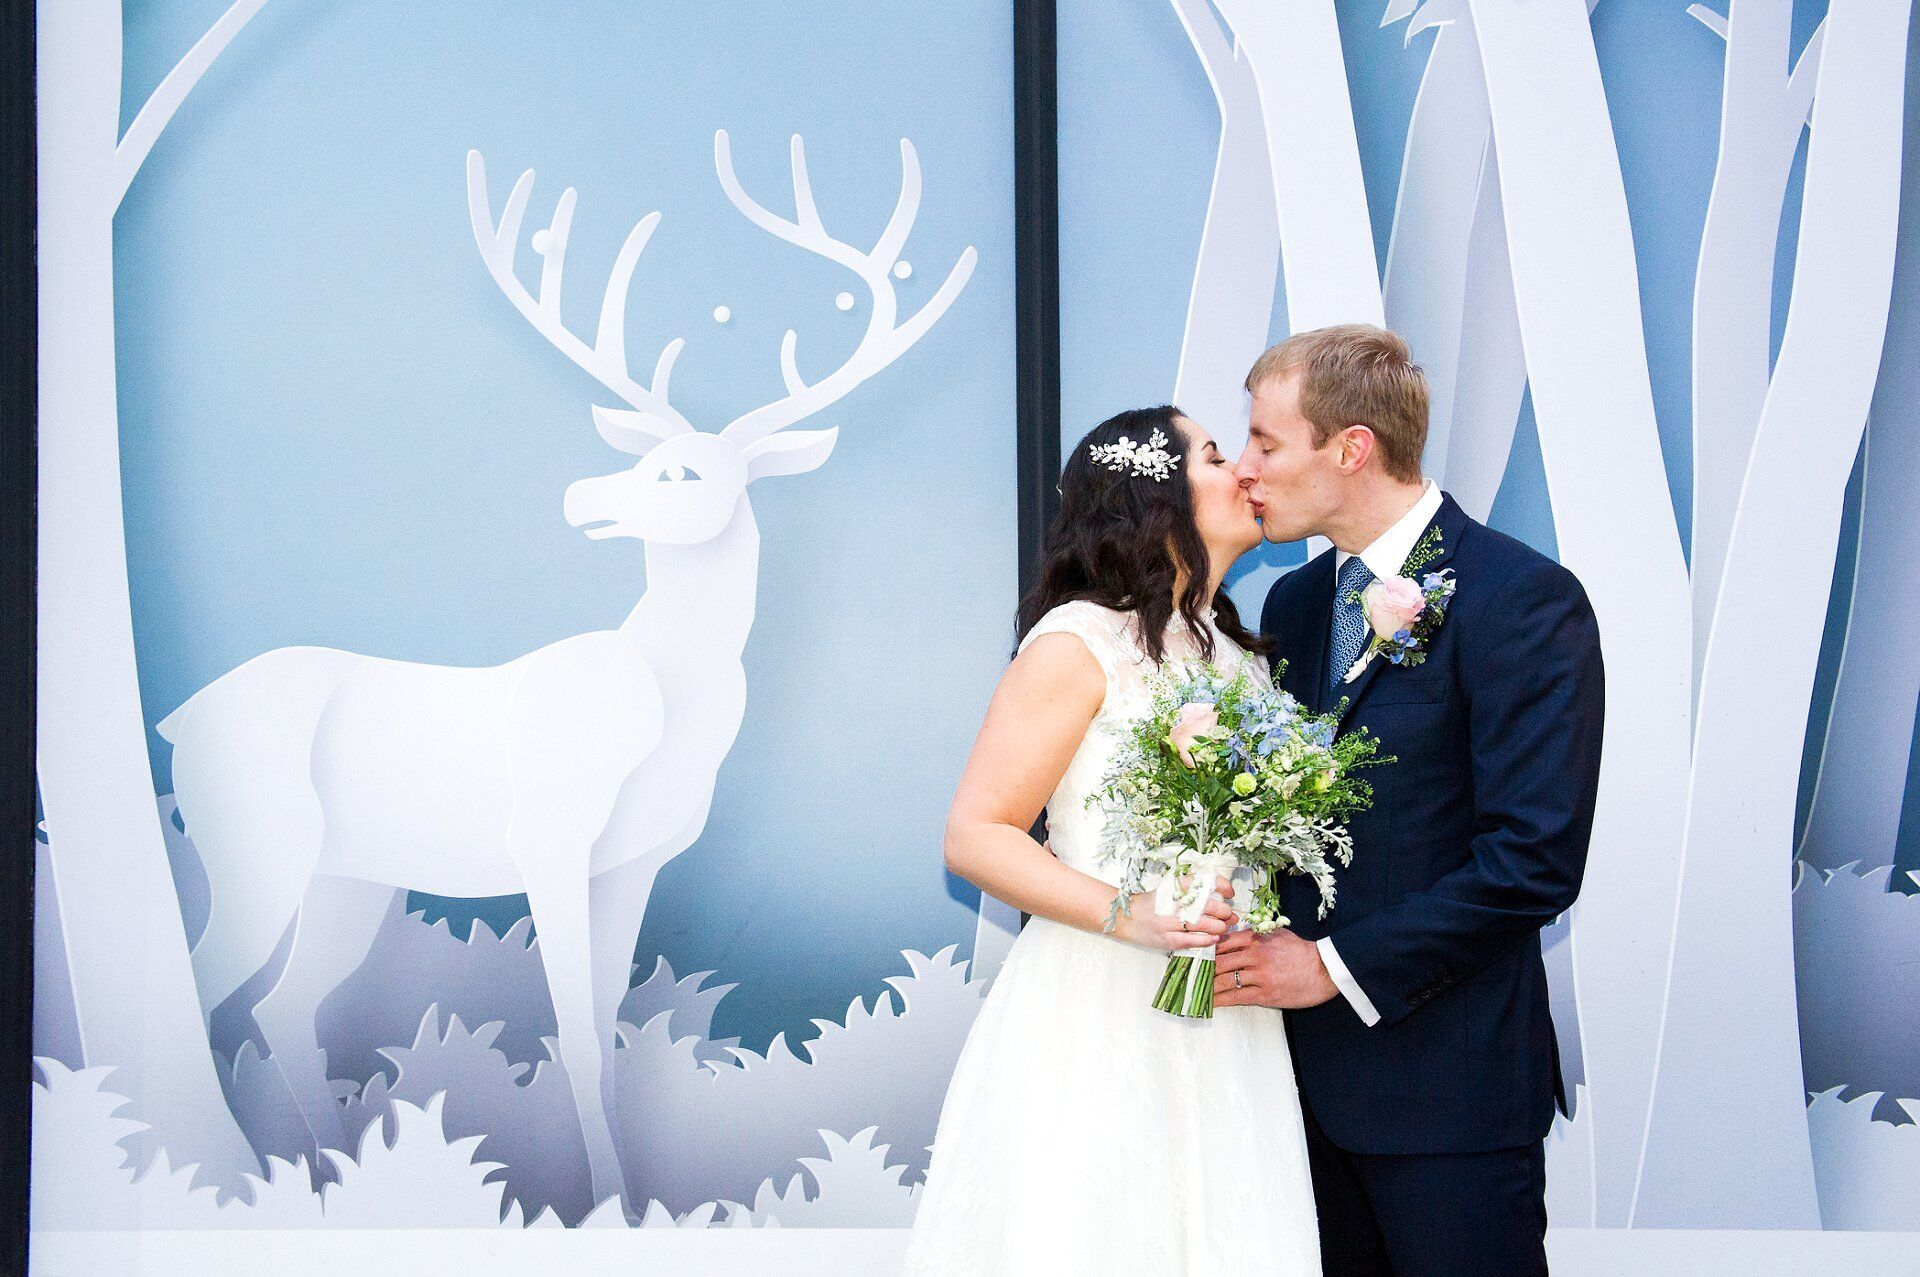 bluebird chelsea wedding photographer bride and groom kissing on london's king's road in front of stag winter scene